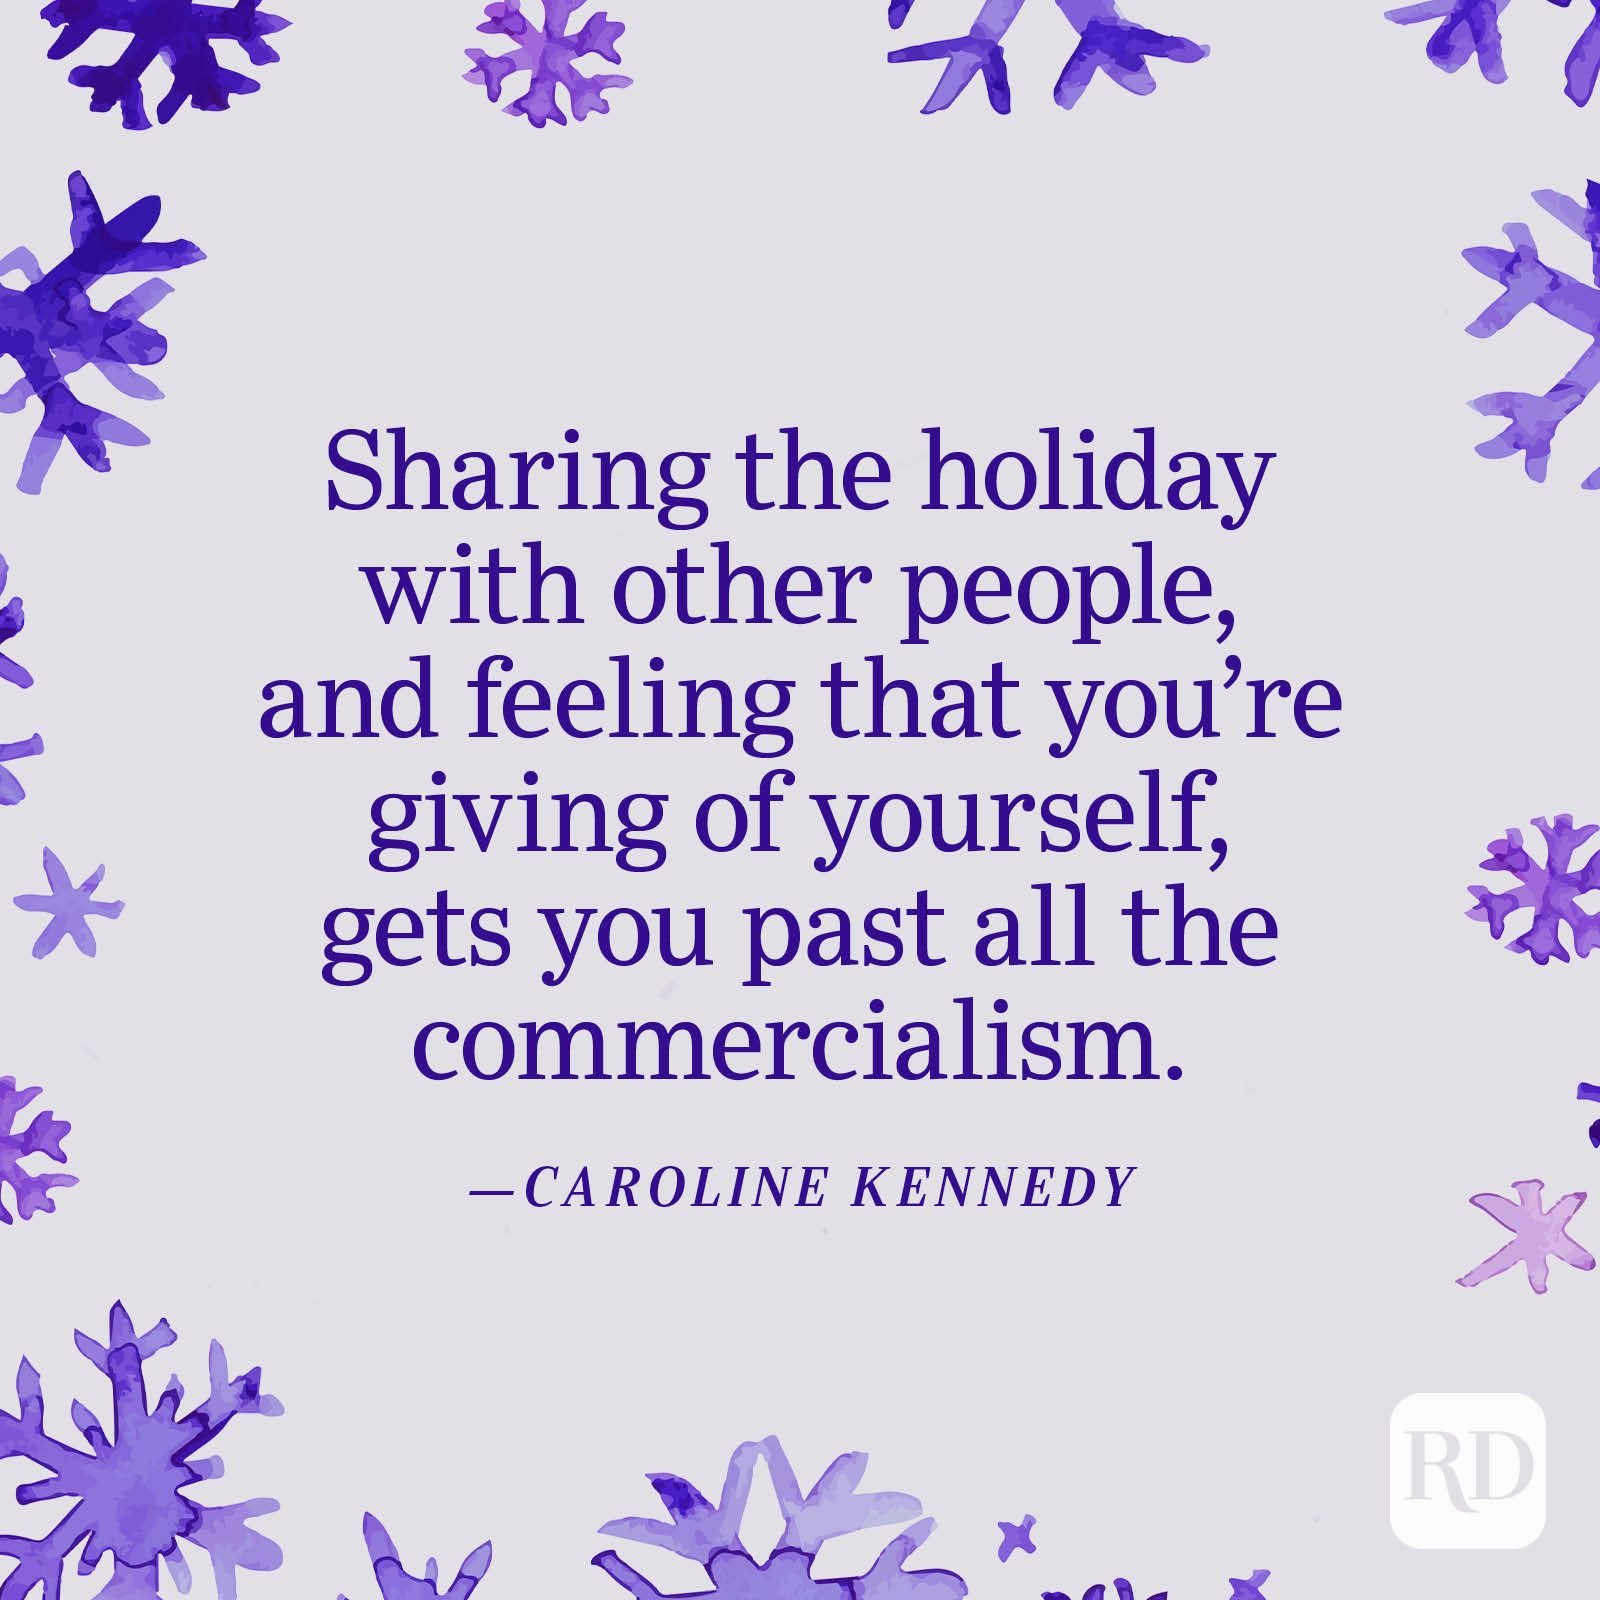 """""""Sharing the holiday with other people, and feeling that you're giving of yourself, gets you past all the commercialism."""" —Caroline Kennedy"""